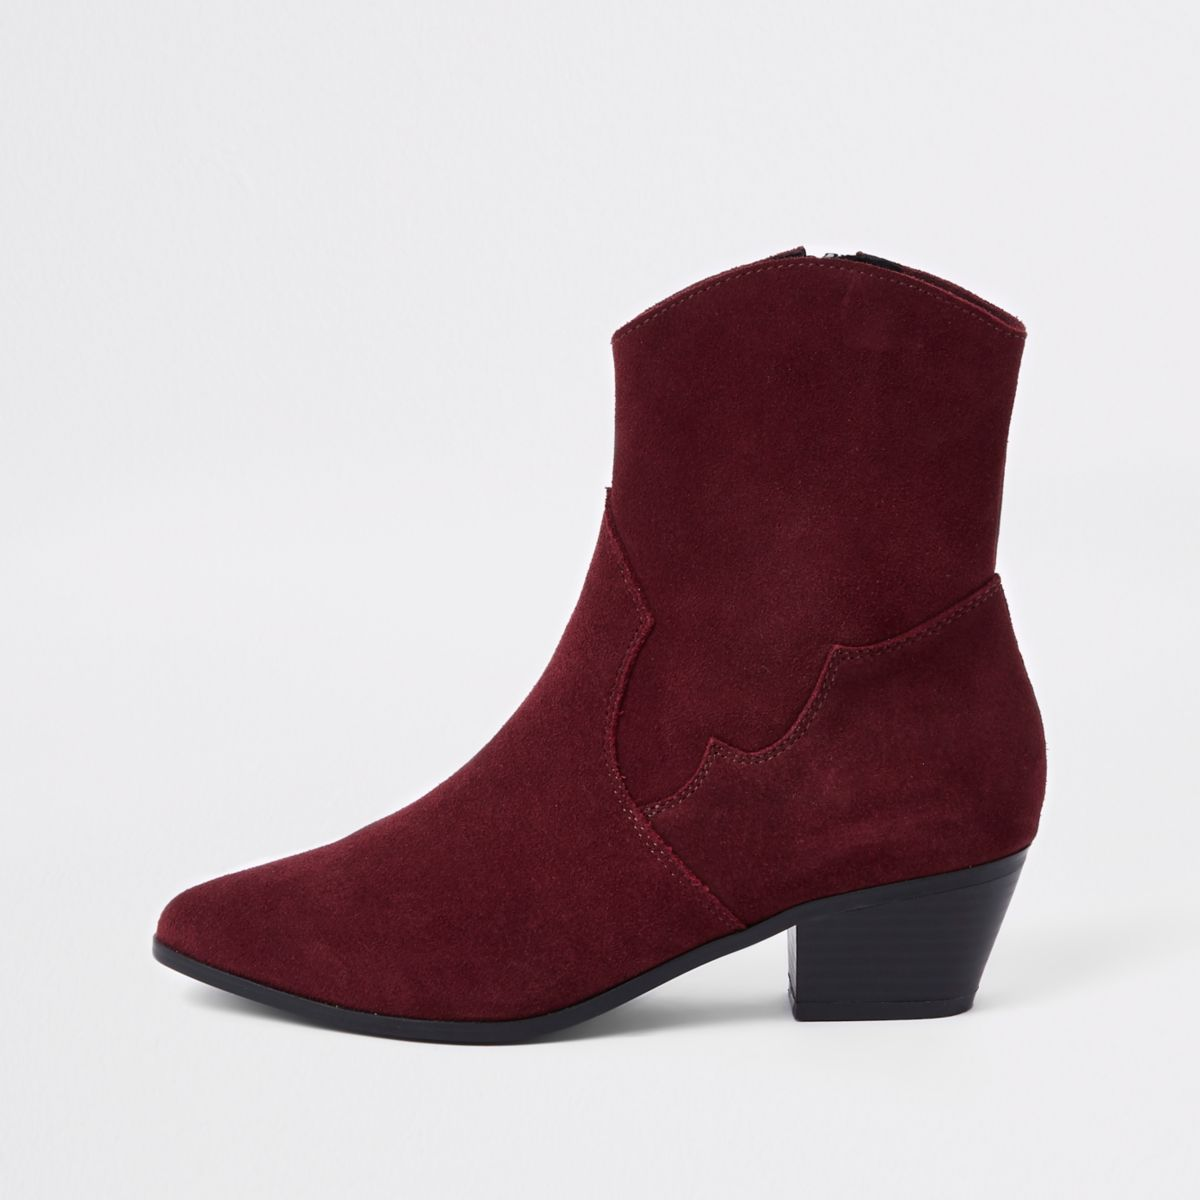 Brown suede western ankle boots